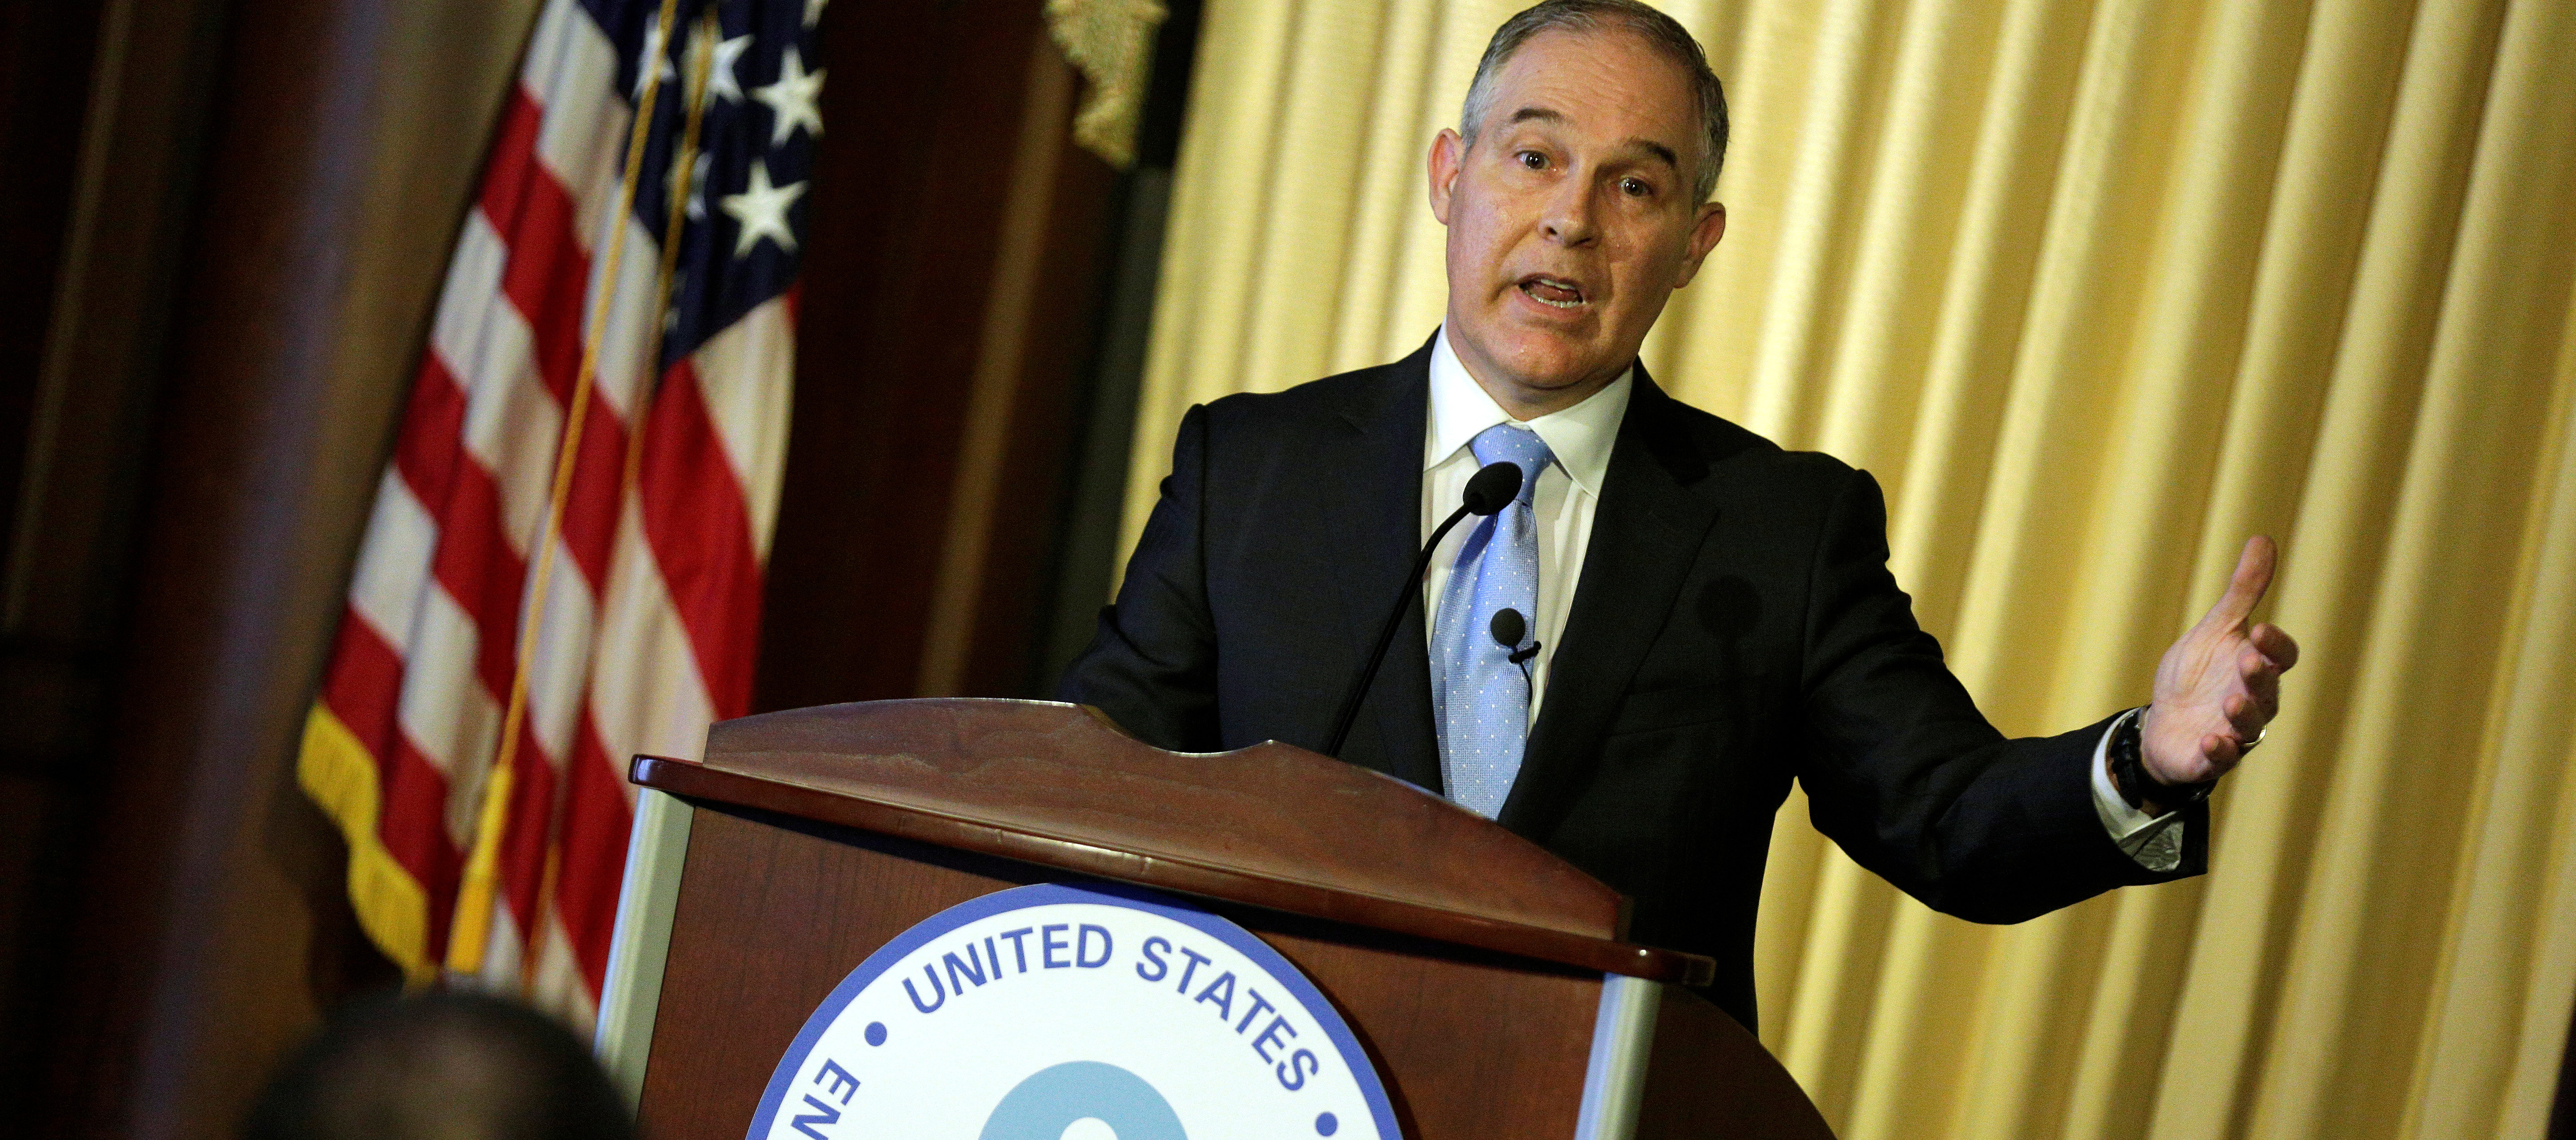 Scott Pruitt, administrator of the Environmental Protection Agency (EPA), speaks to employees of the agency in Washington, U.S., February 21, 2017.      REUTERS/Joshua Roberts - RC12C531A590